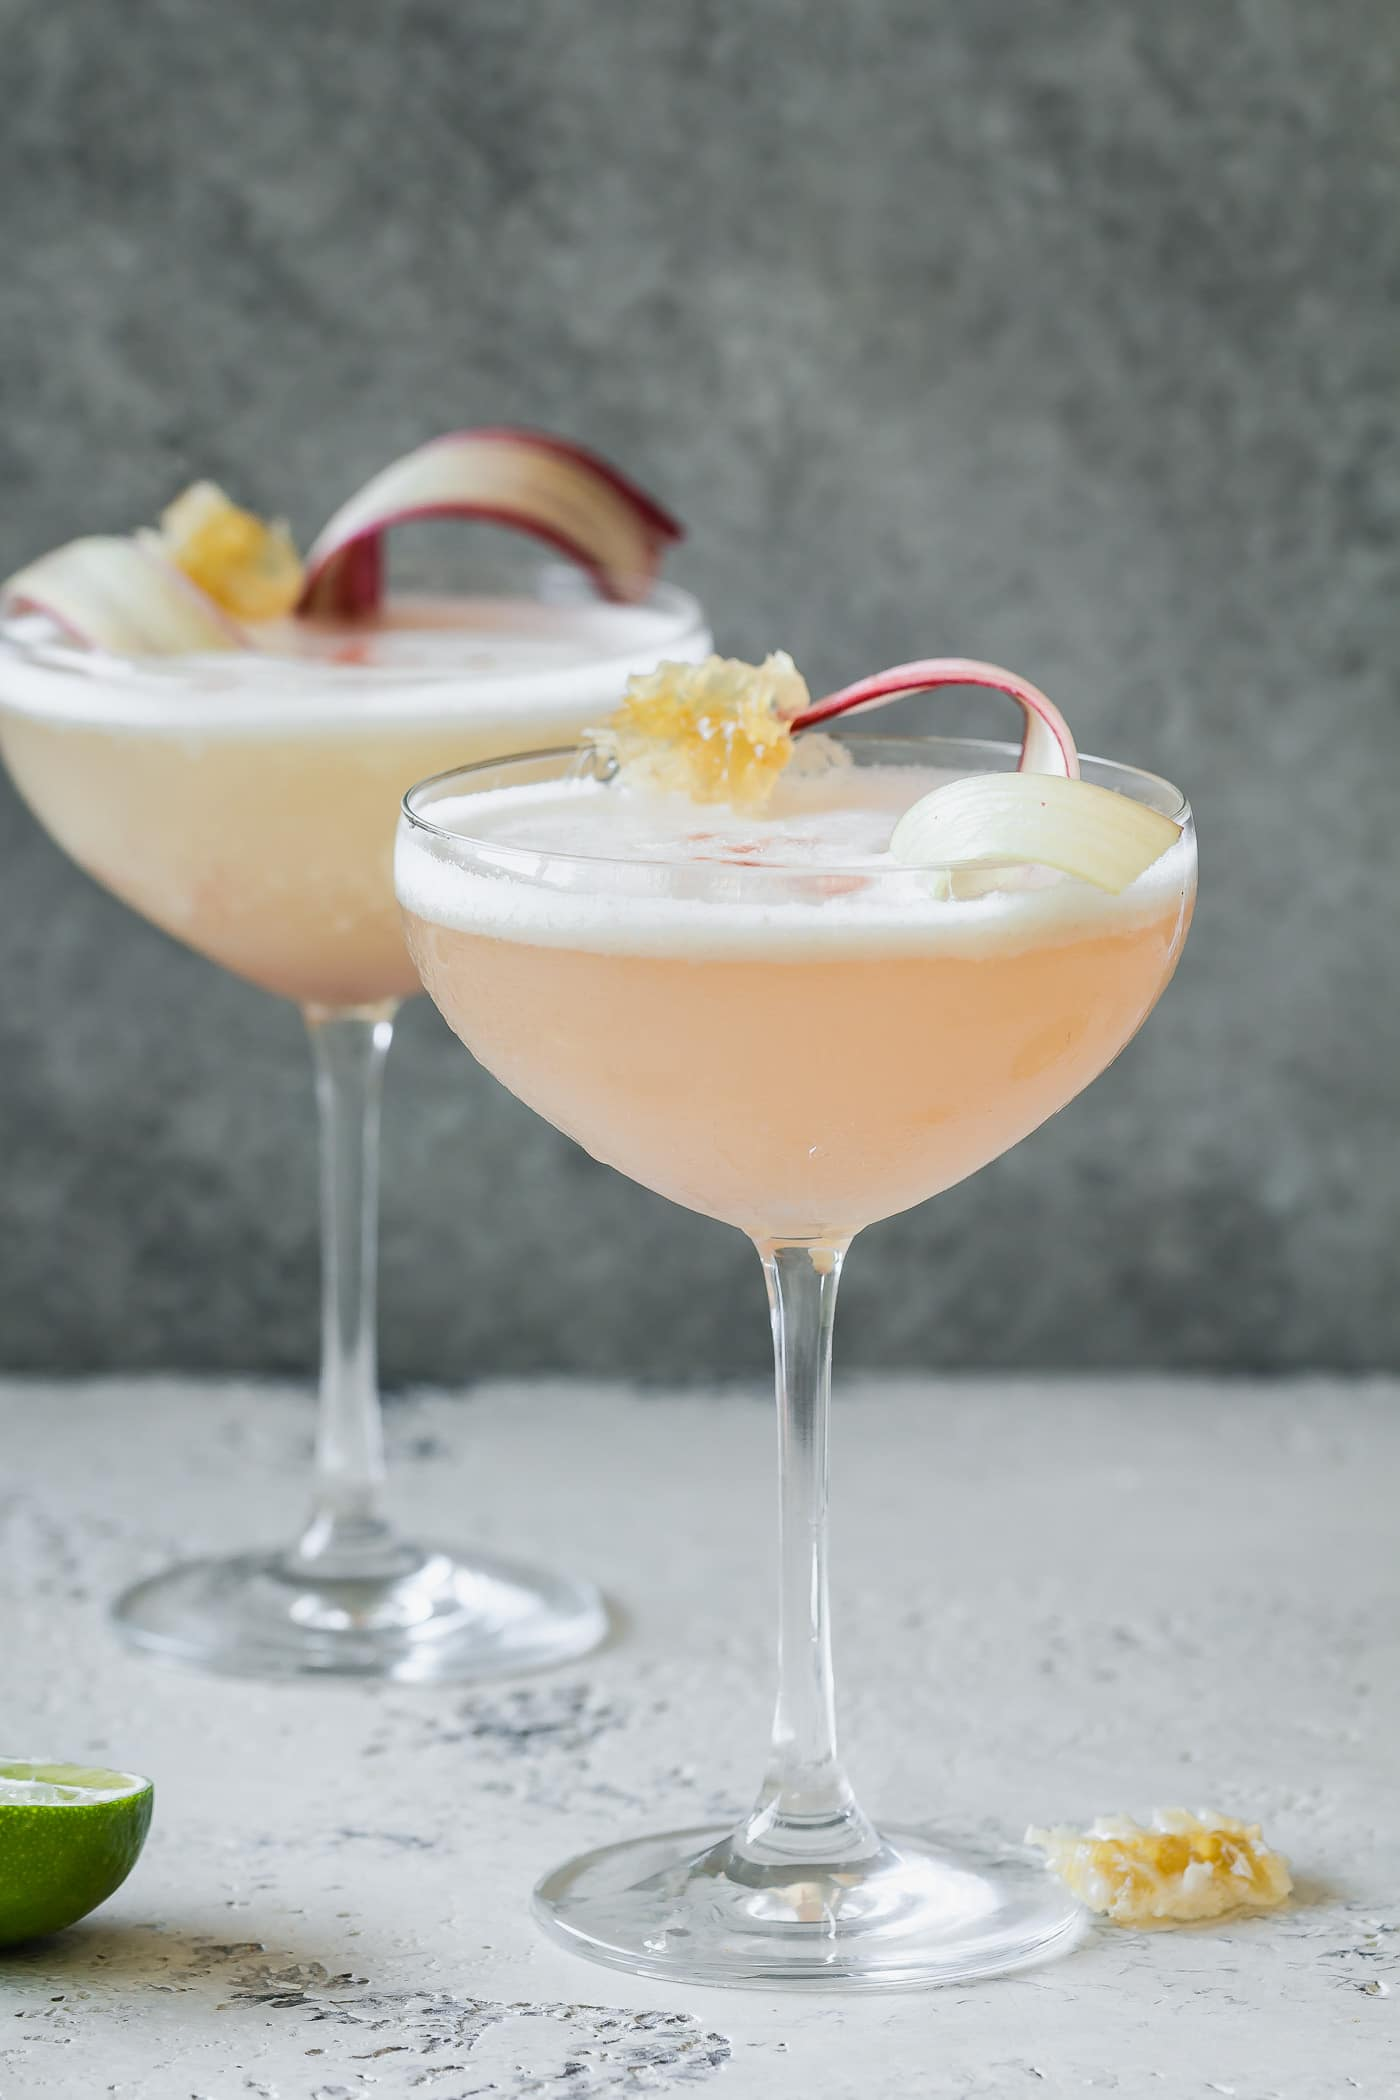 two glasses of Rhubarb Honey Pisco Sour - side view